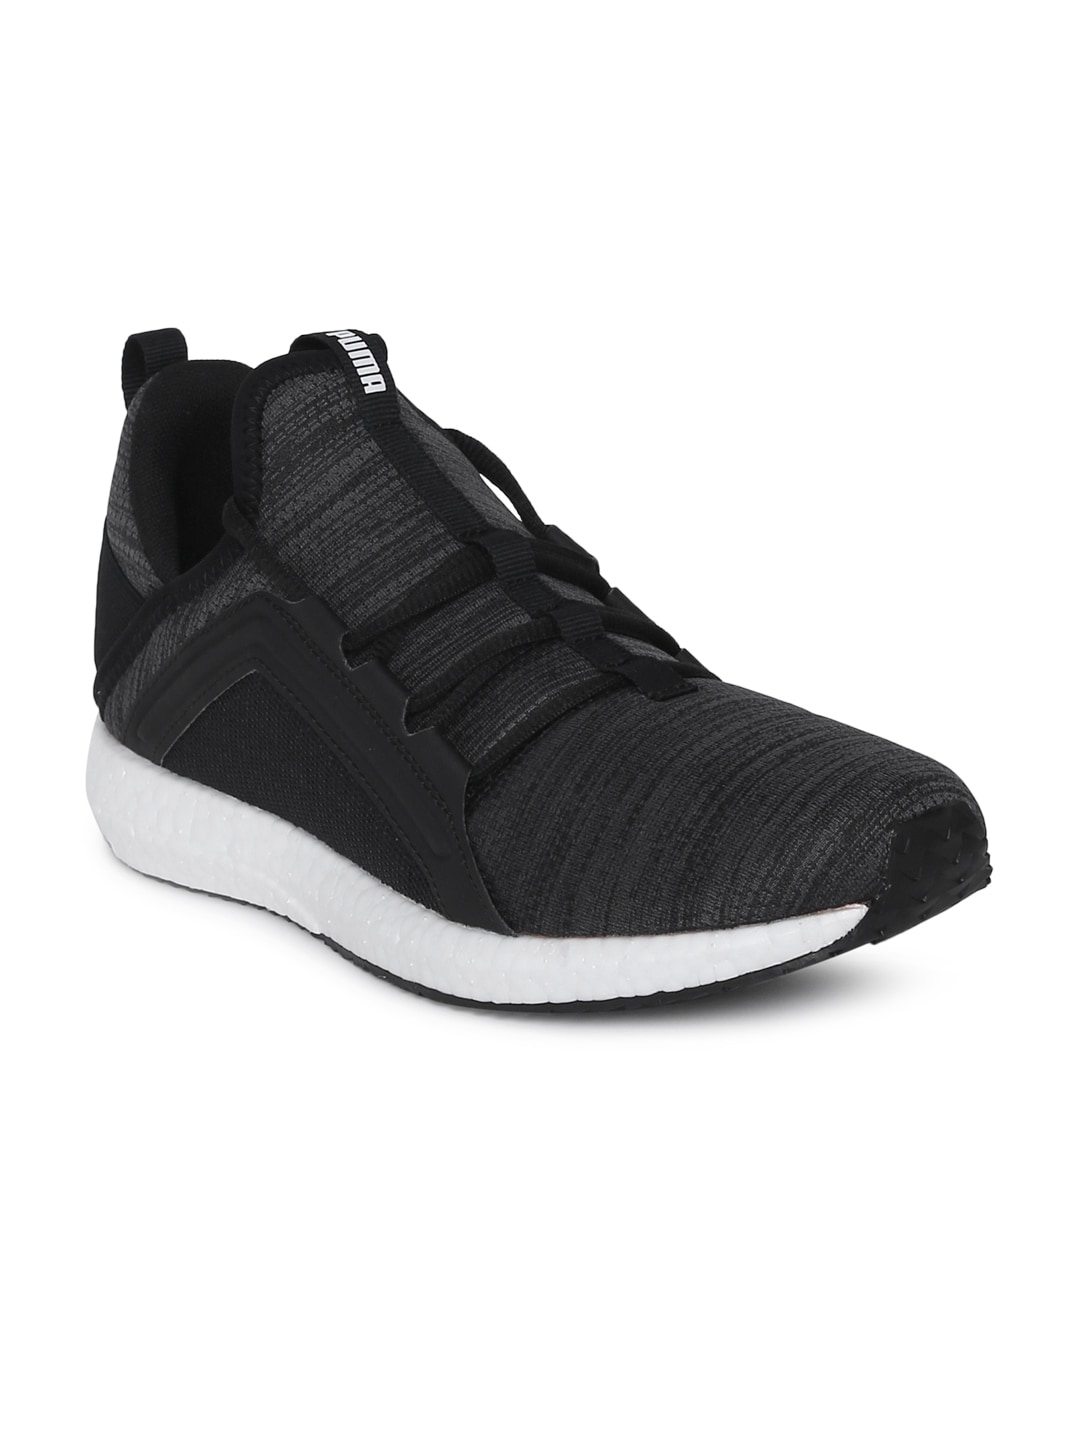 72a9f638c56 Girls Puma Casual Shoes - Buy Girls Puma Casual Shoes online in India